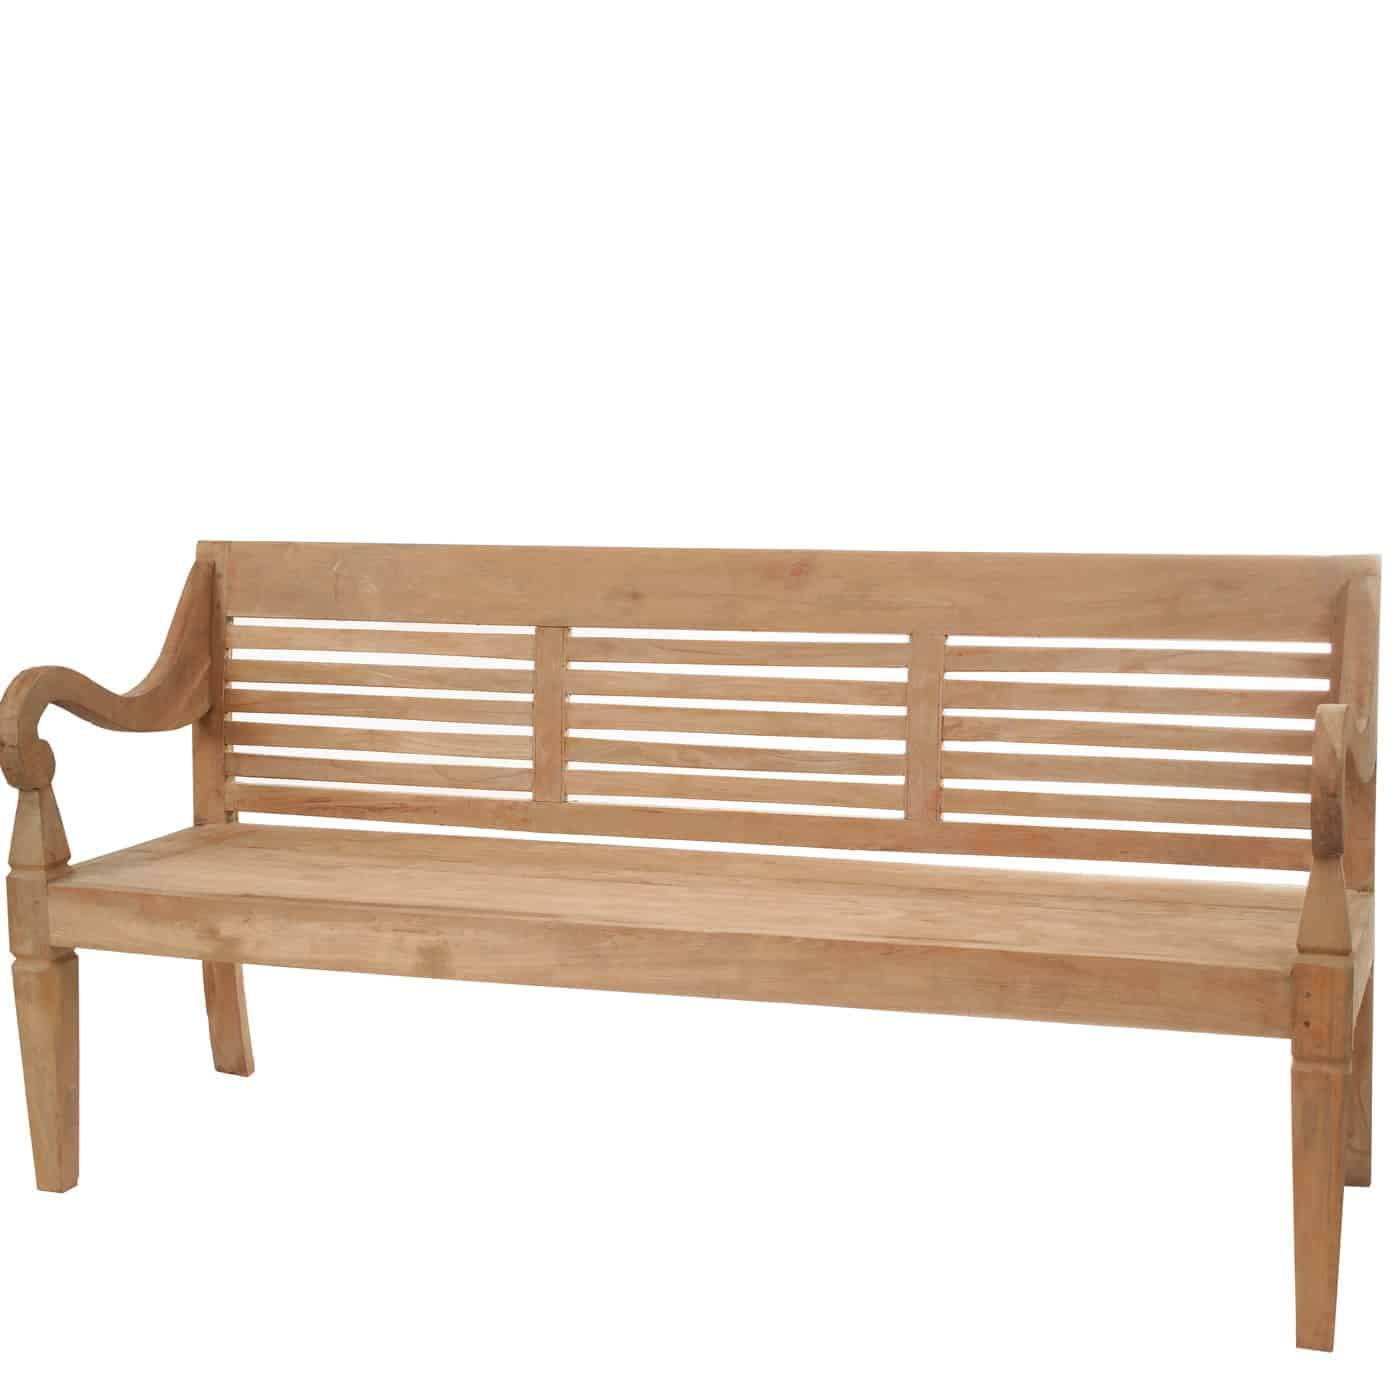 Barlow Tyrie  Faraway Furniture  Gloster Furniture and some of the Indian  Ocean Teak range  Buying from one of the above will ensure you are  investing in. UK Flooded With Cheaply Made Teak Garden Furniture from Illegal